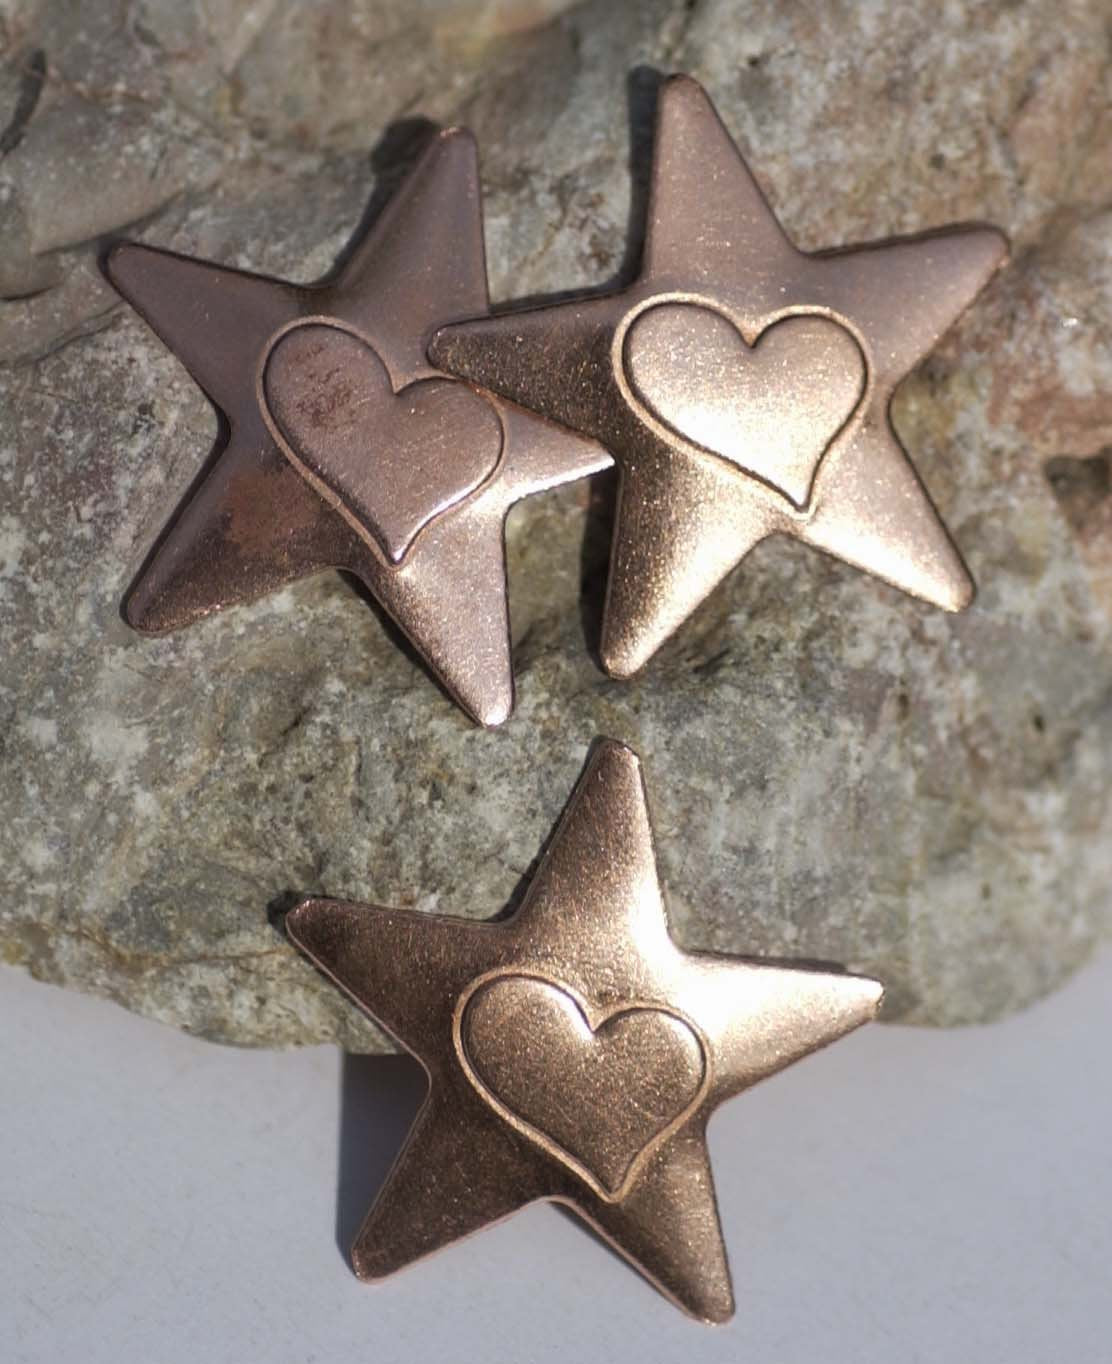 31mm Star with Heart Embossed Blank Cutout for Enameling Stamping Texturing Metalworking Jewelry Making Blanks - 4 pieces